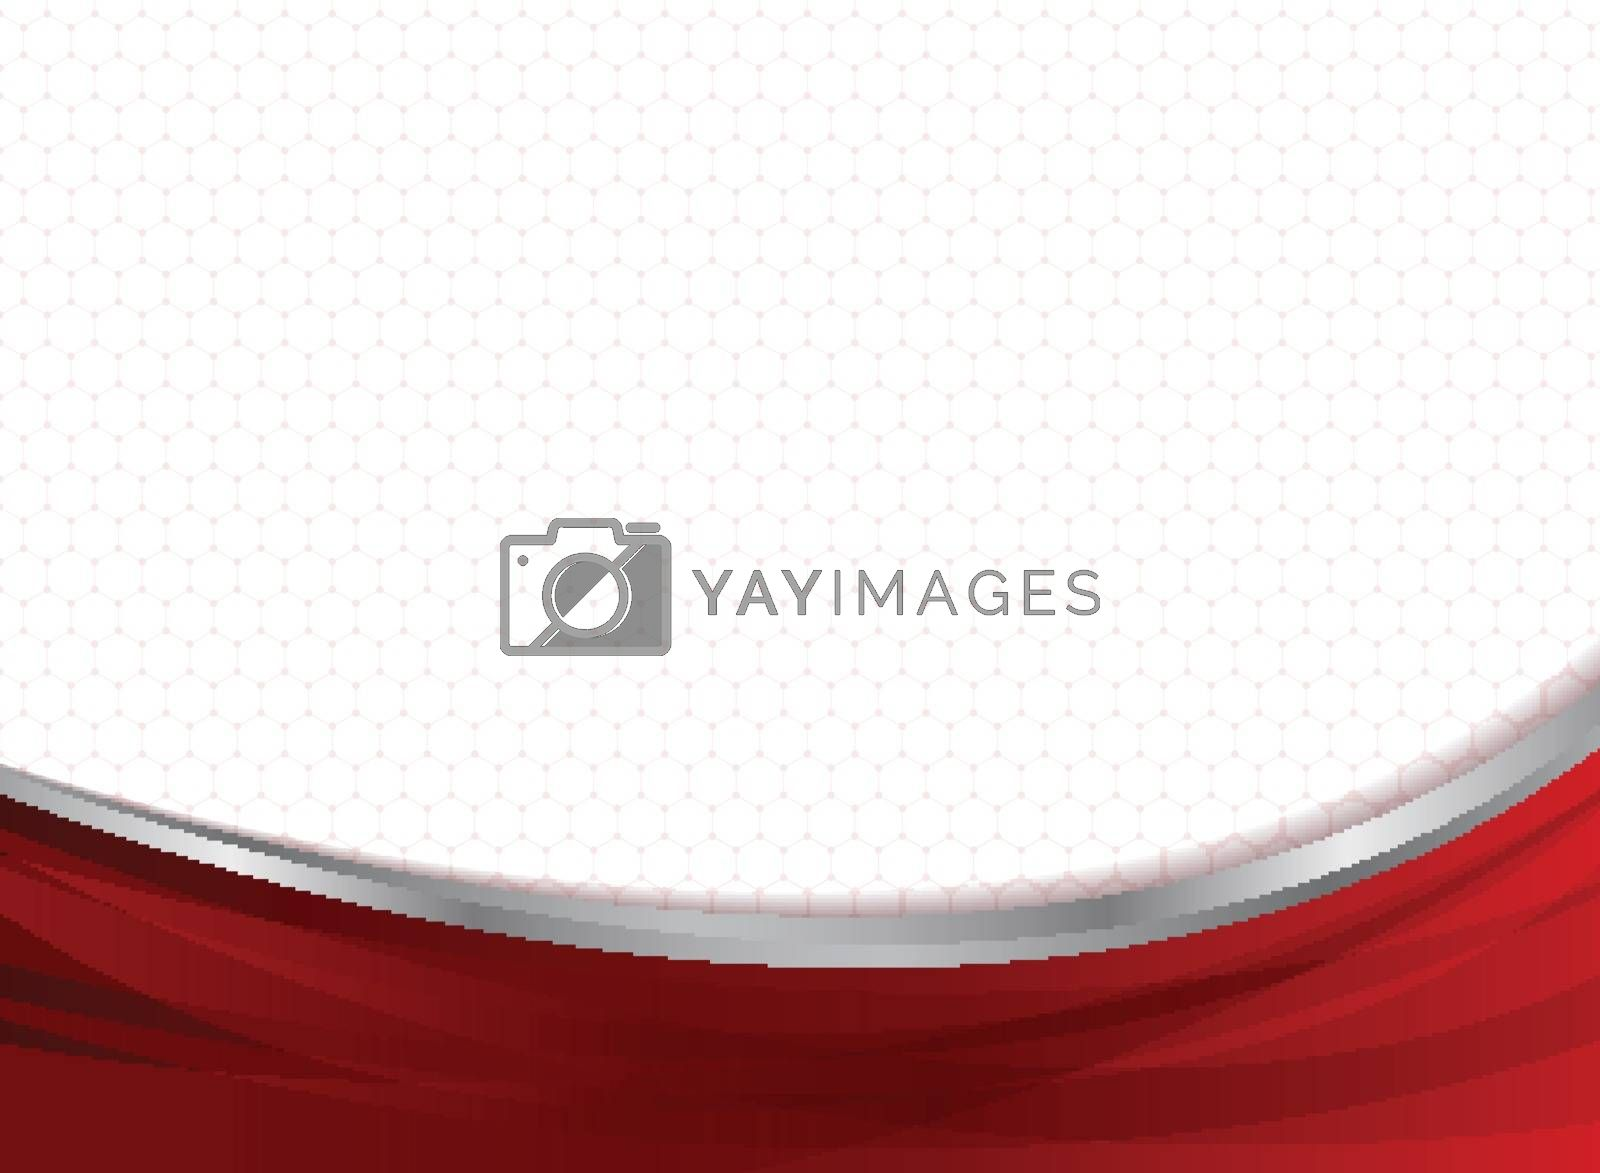 Abstract technology business red curve on hexagons pattern background. Vector illustration